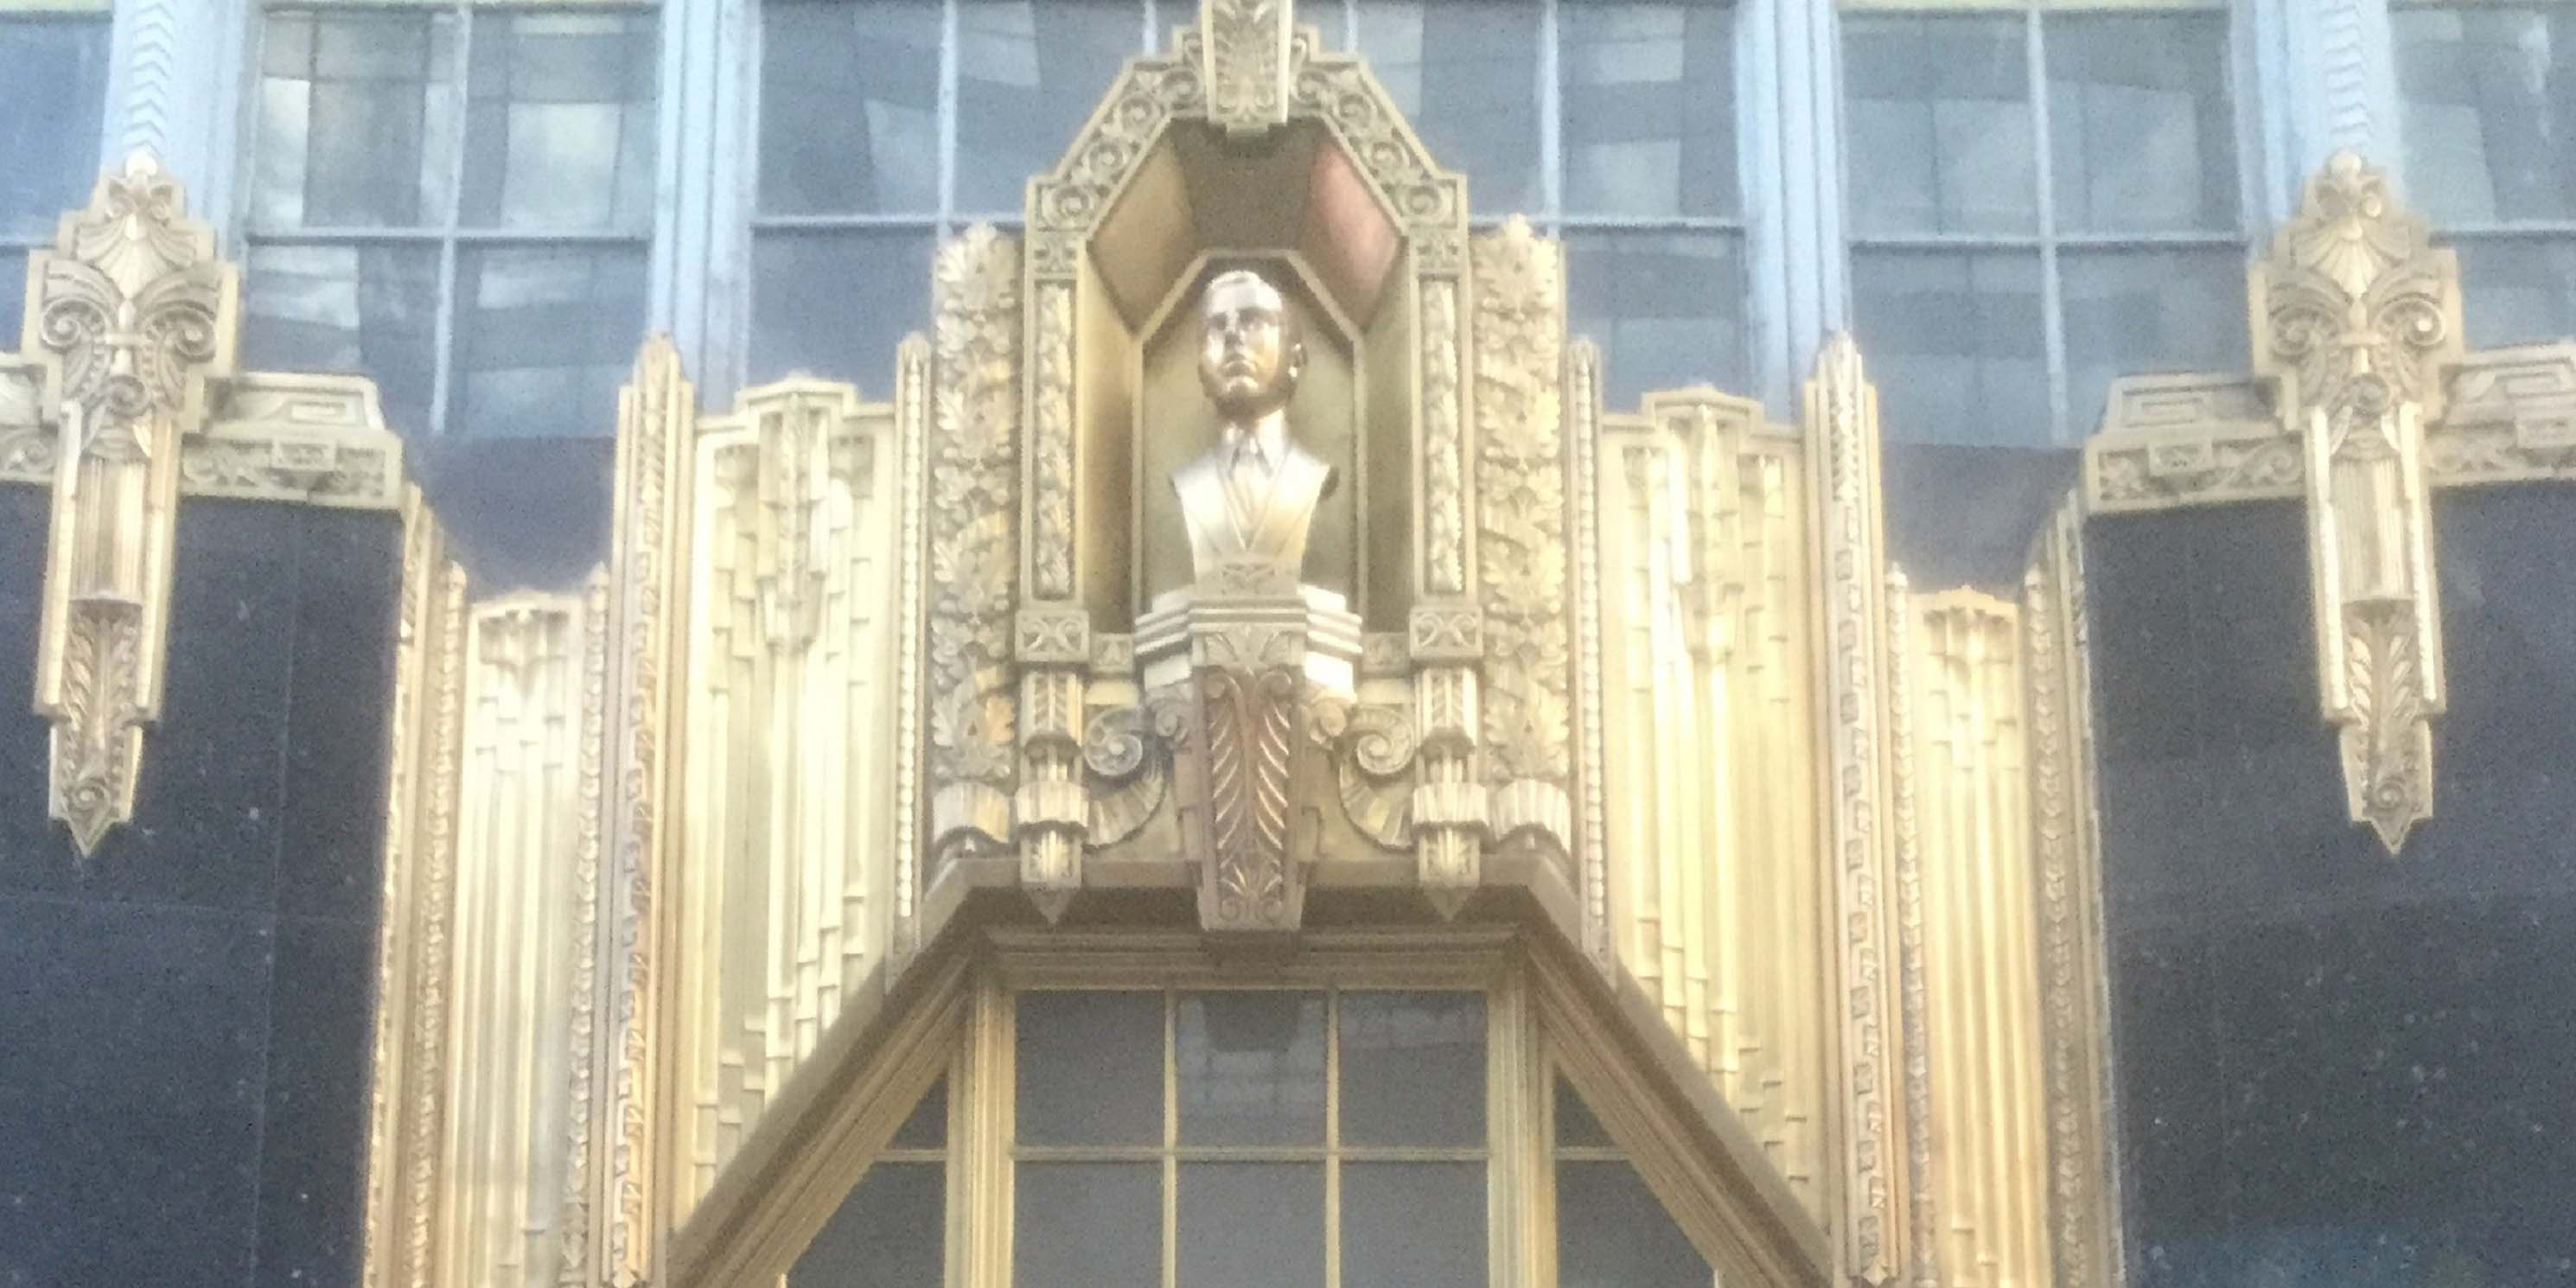 Bust on the exterior of the Brill Building